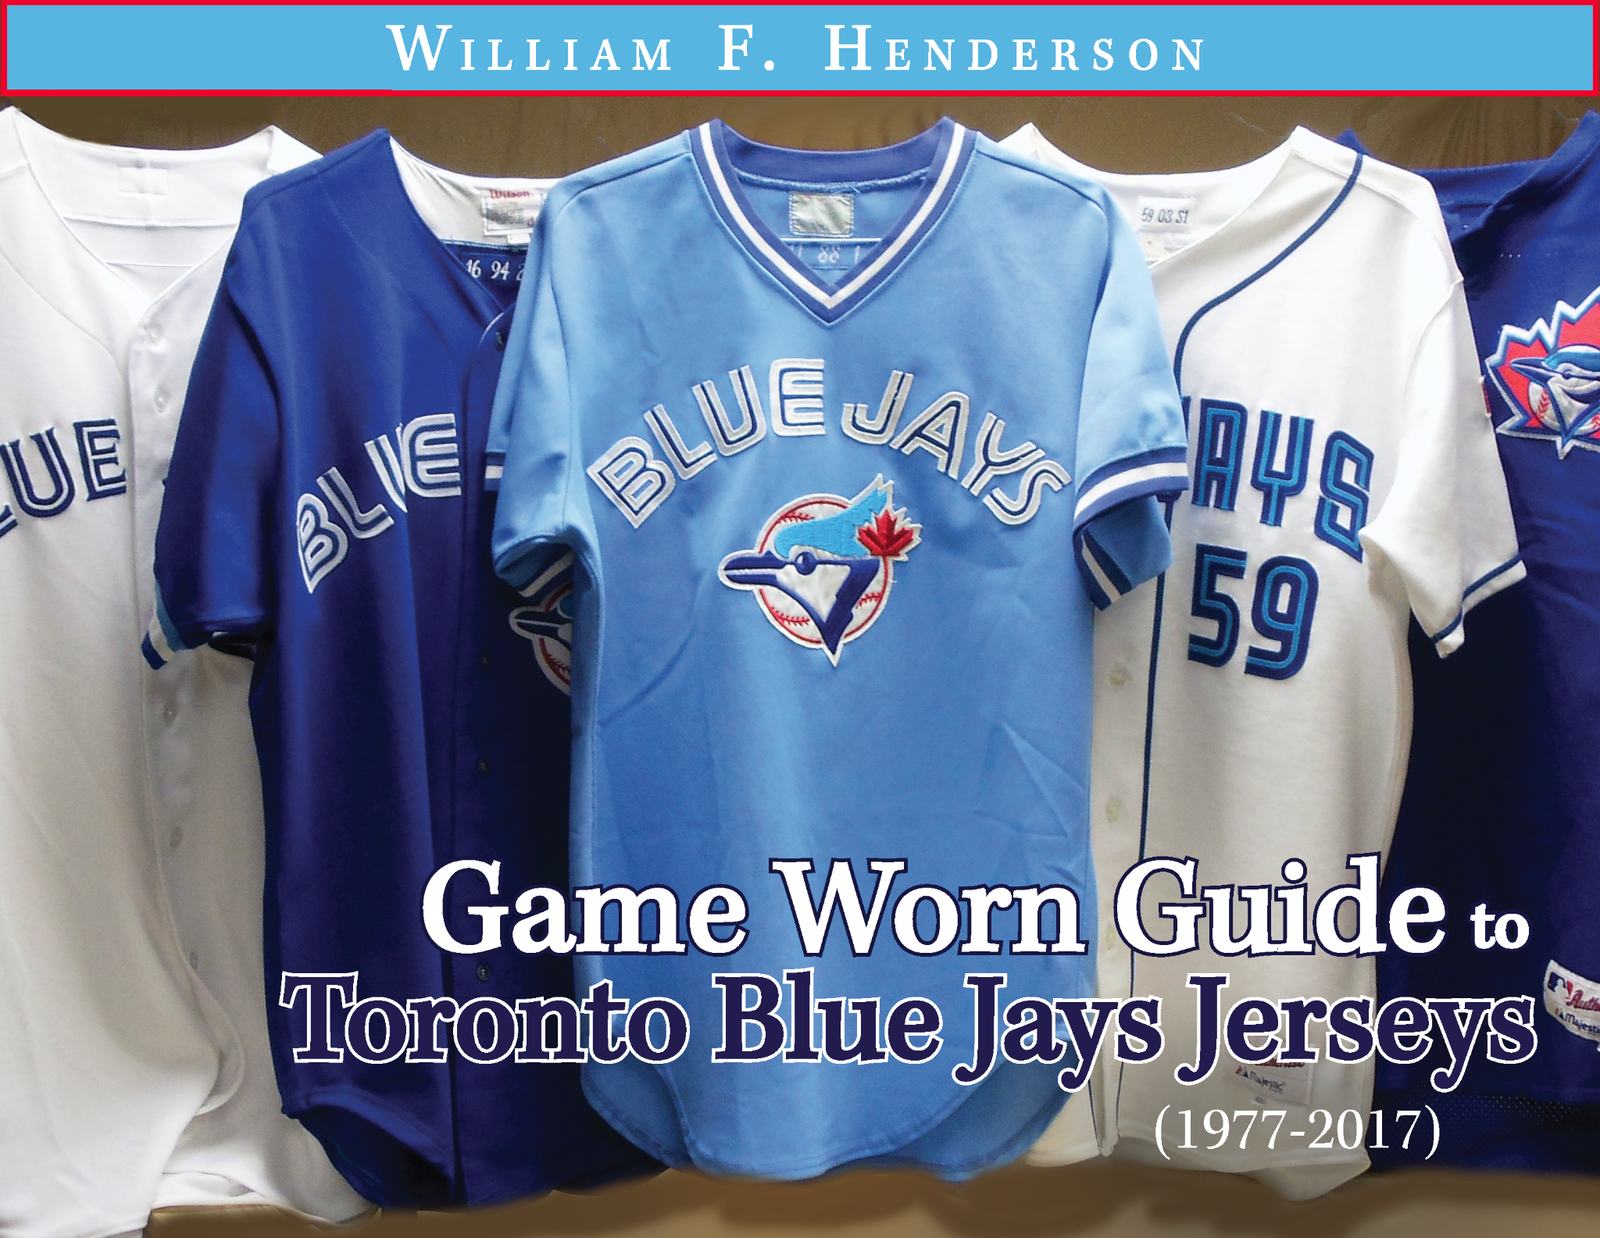 wholesale dealer 9e1e0 adf6a Game Worn Guide to Toronto Blue Jays Jerseys (1977-2017) - Game Worn Guides  / William Henderson